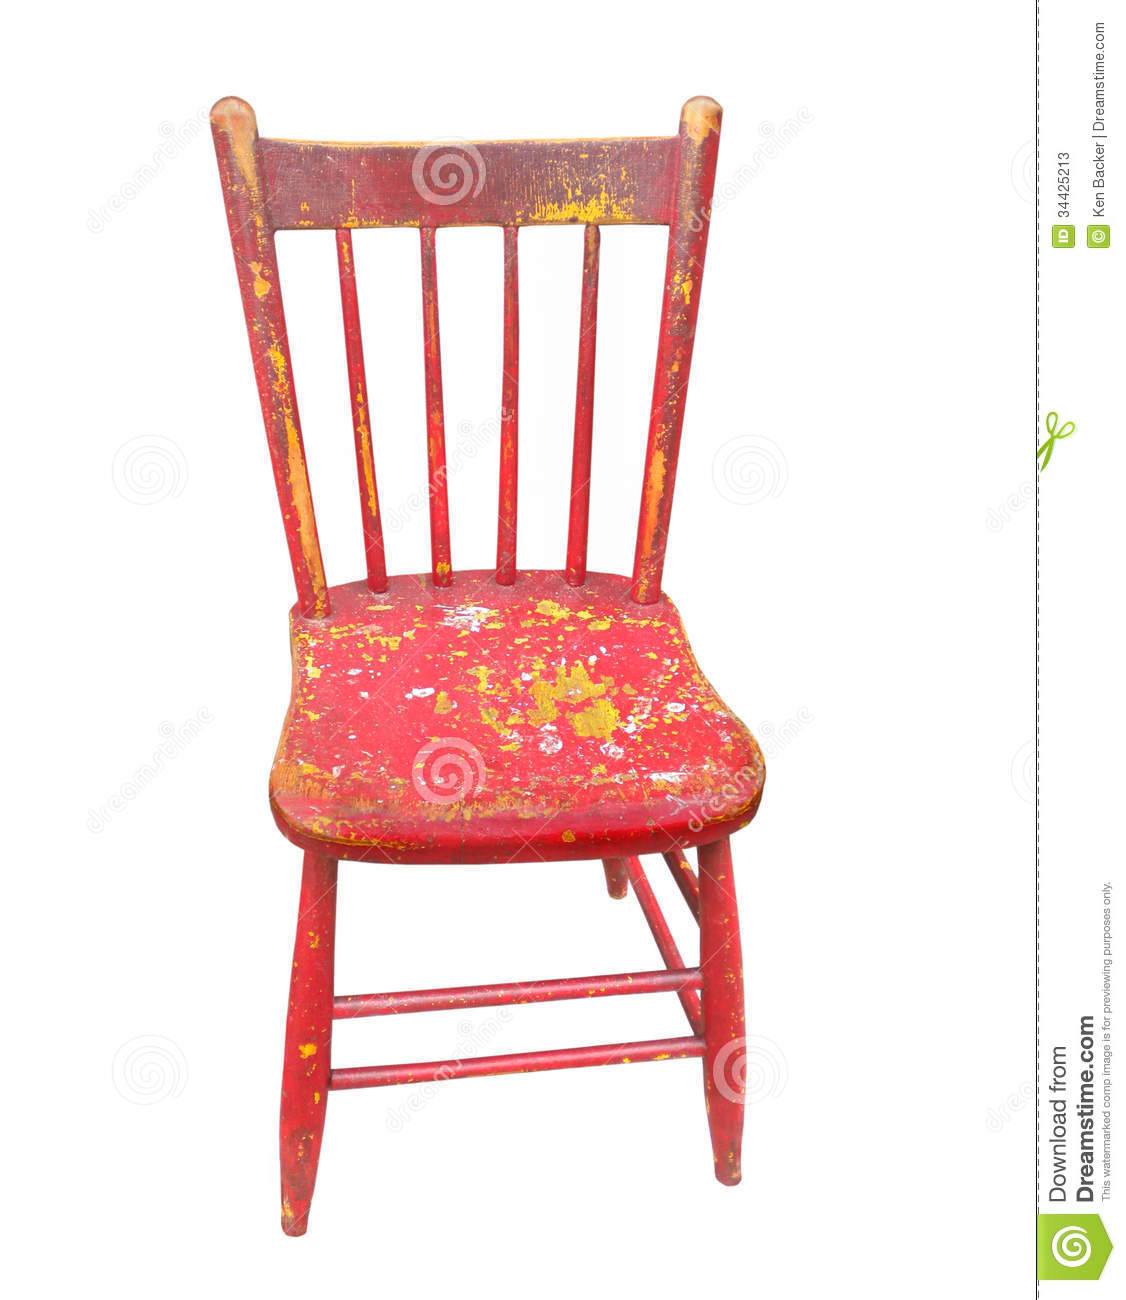 Vieille chaise rouge en bois d 39 isolement photos stock image 34425213 - Vieille chaise en bois ...